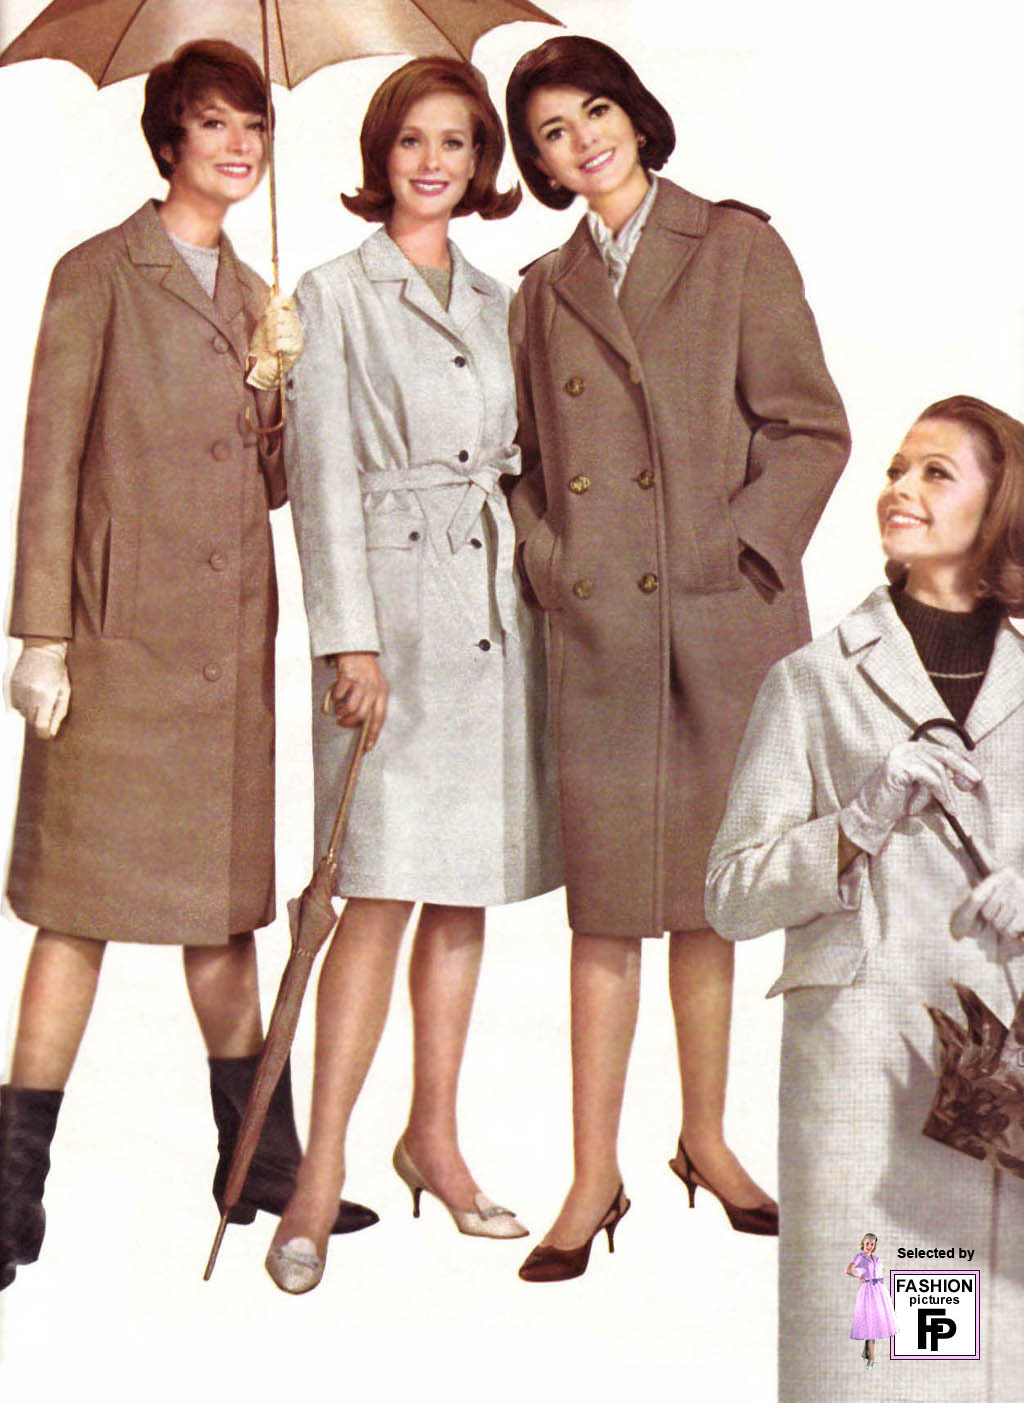 1963 Fashion Clothes Part of Our Sixties Fashions Section